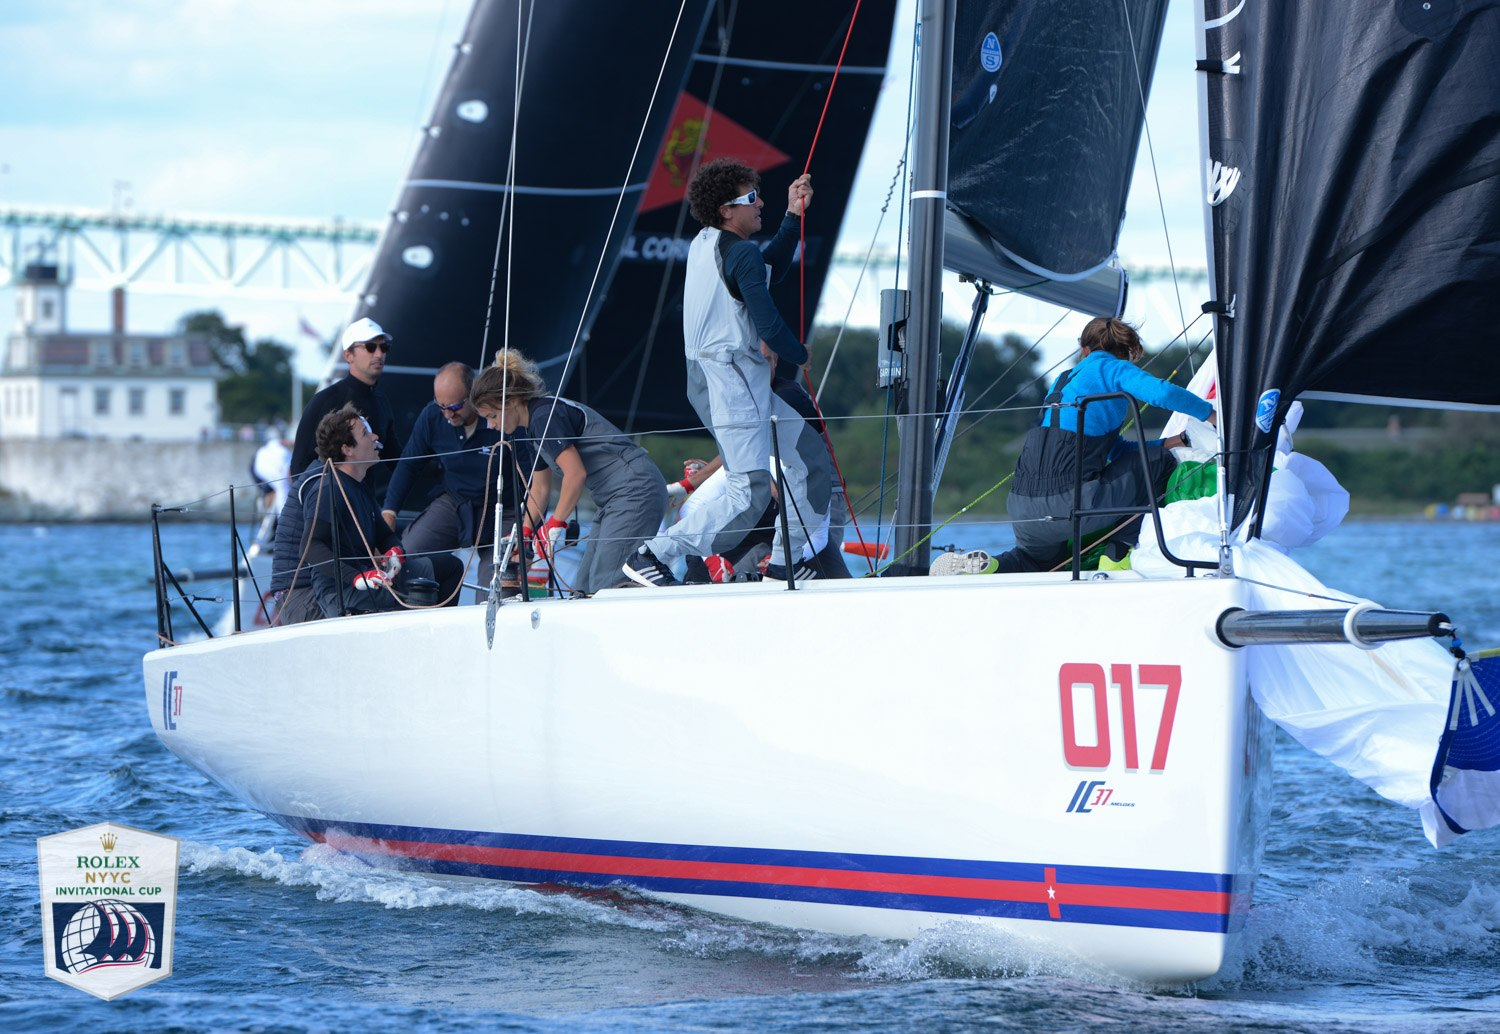 The YCCS Race Team at the Rolex NYYC Invitational Cup - NEWS - Yacht Club Costa Smeralda